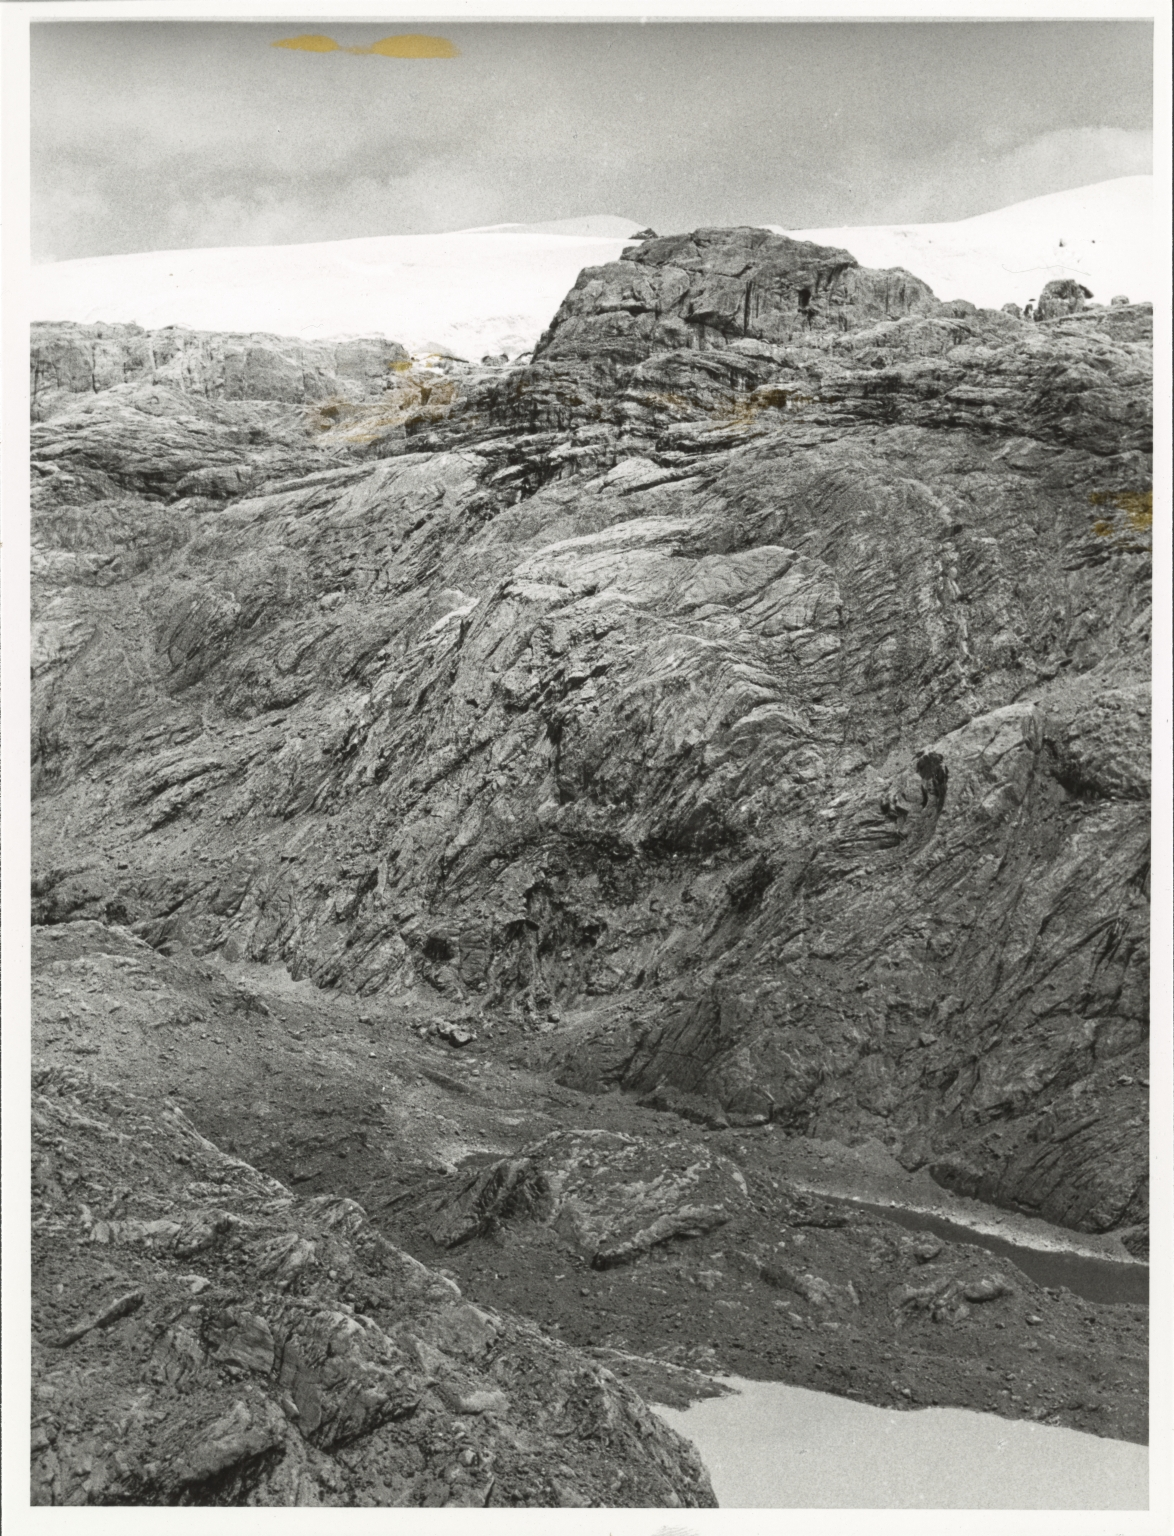 Northwall Firn (western portion), Indonesia